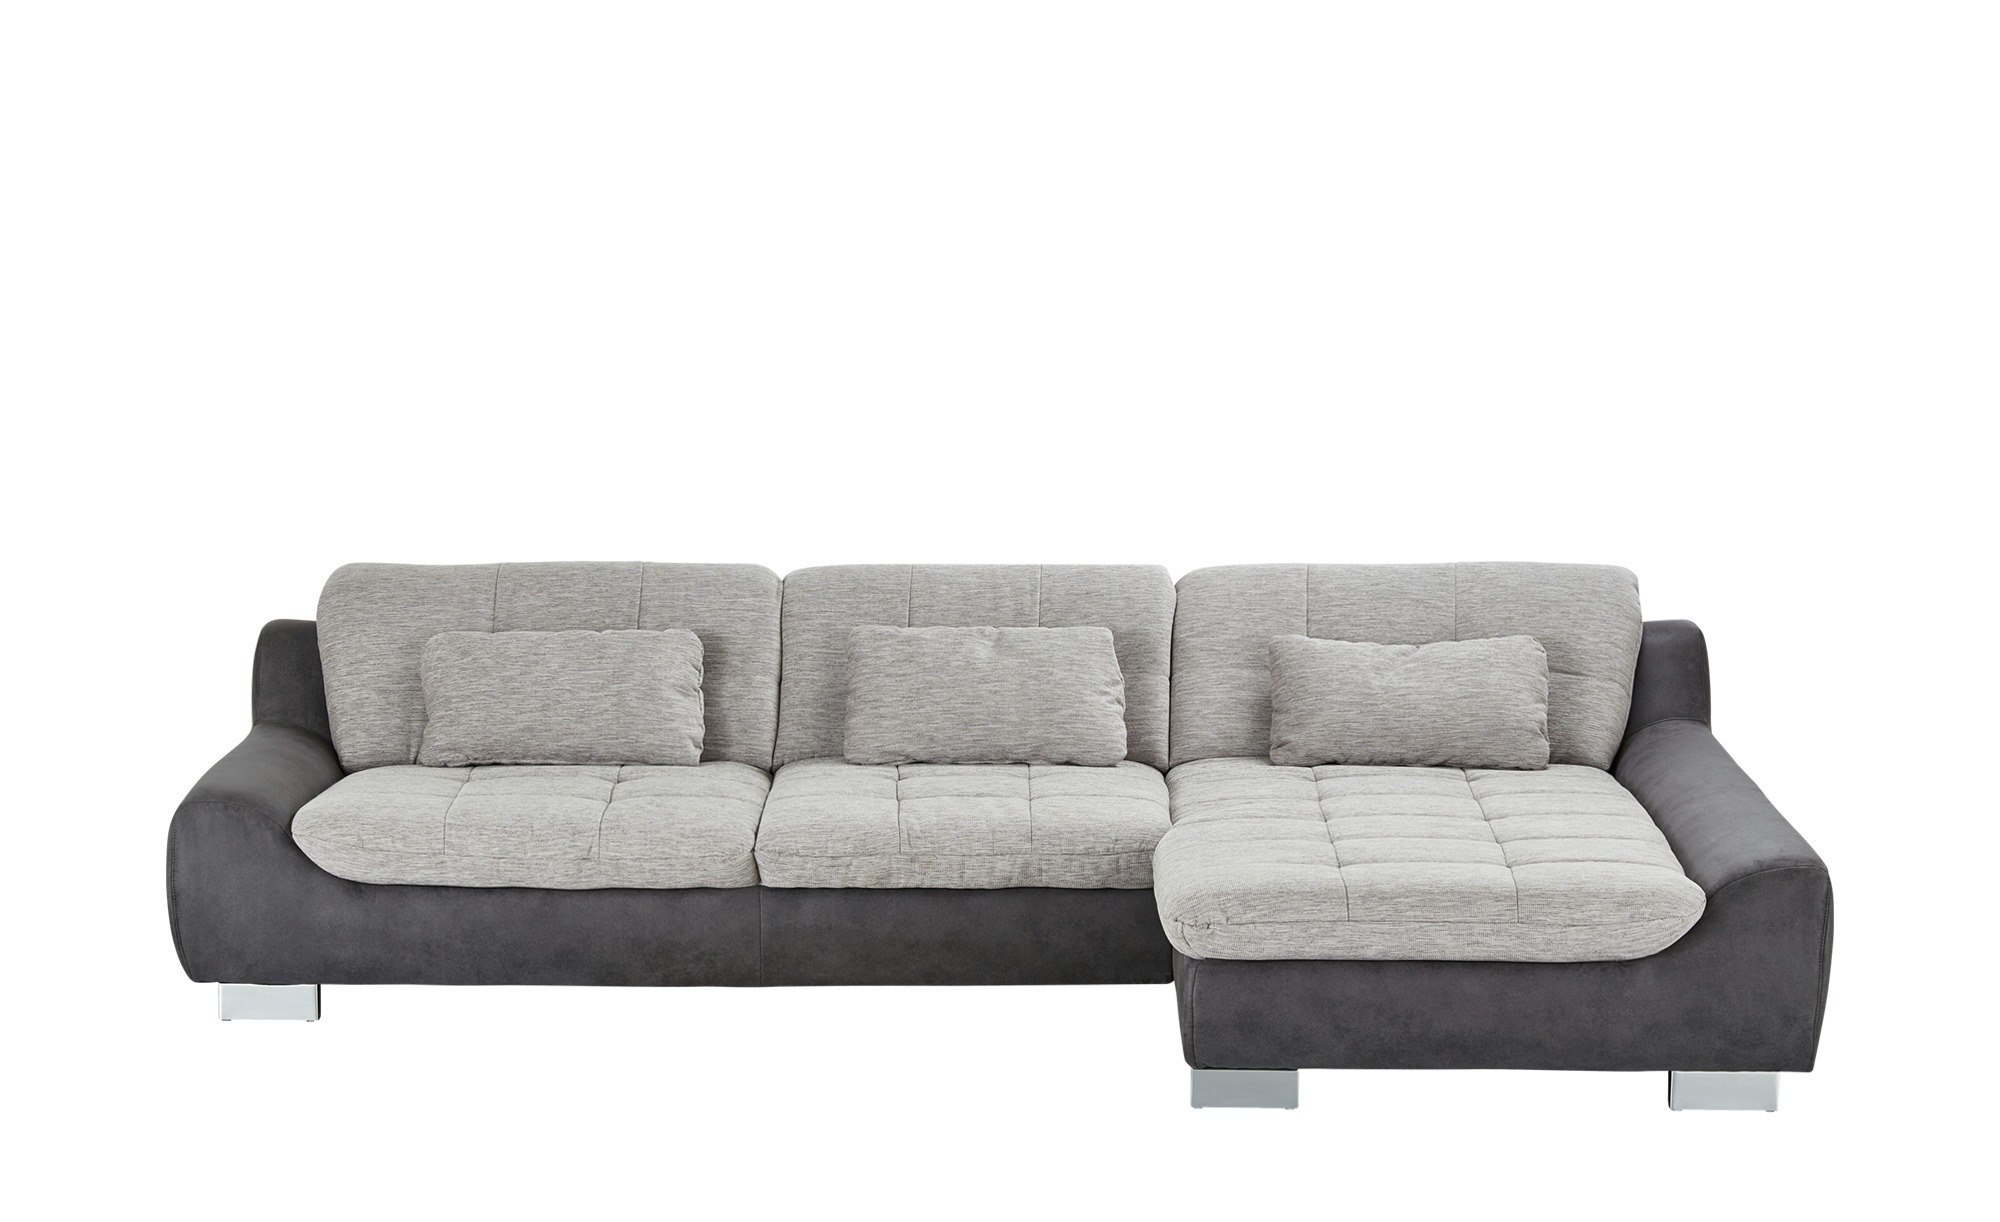 ecksofa sandra breite h he 90 cm grau online kaufen bei woonio. Black Bedroom Furniture Sets. Home Design Ideas